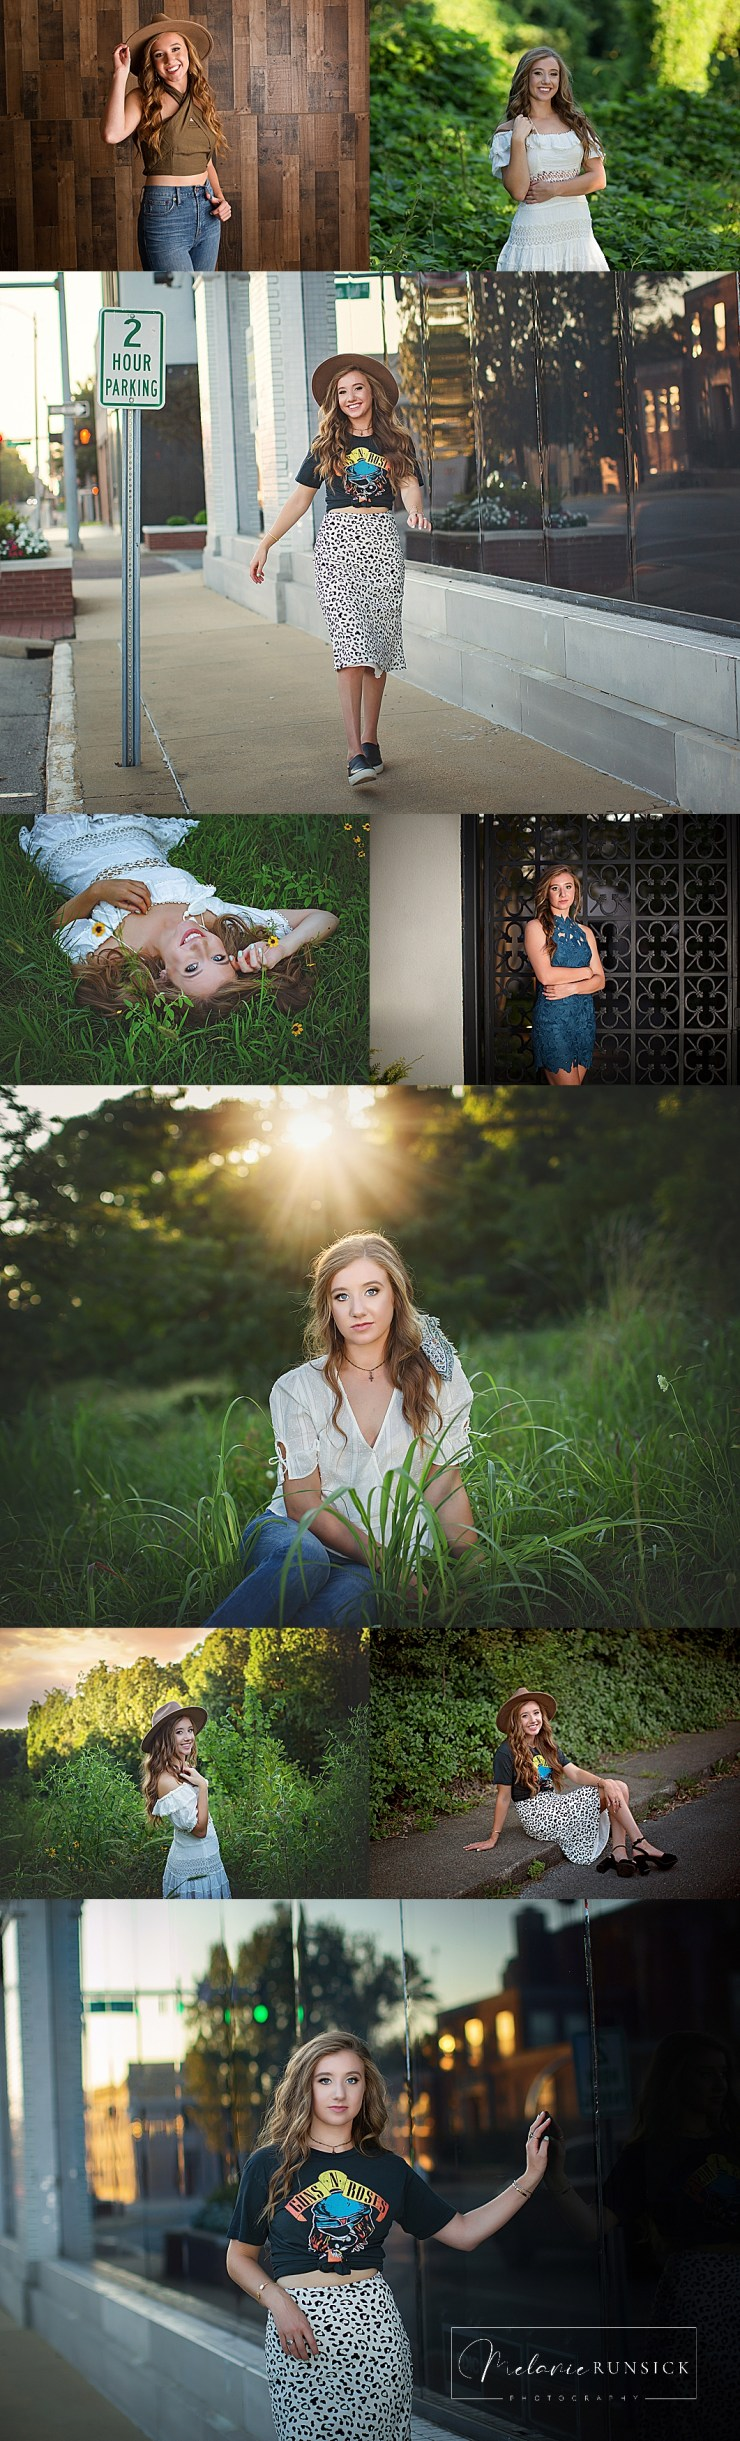 Melanie Runsick Photography Jonesboro Arkansas Senior Photographer Valley View High School